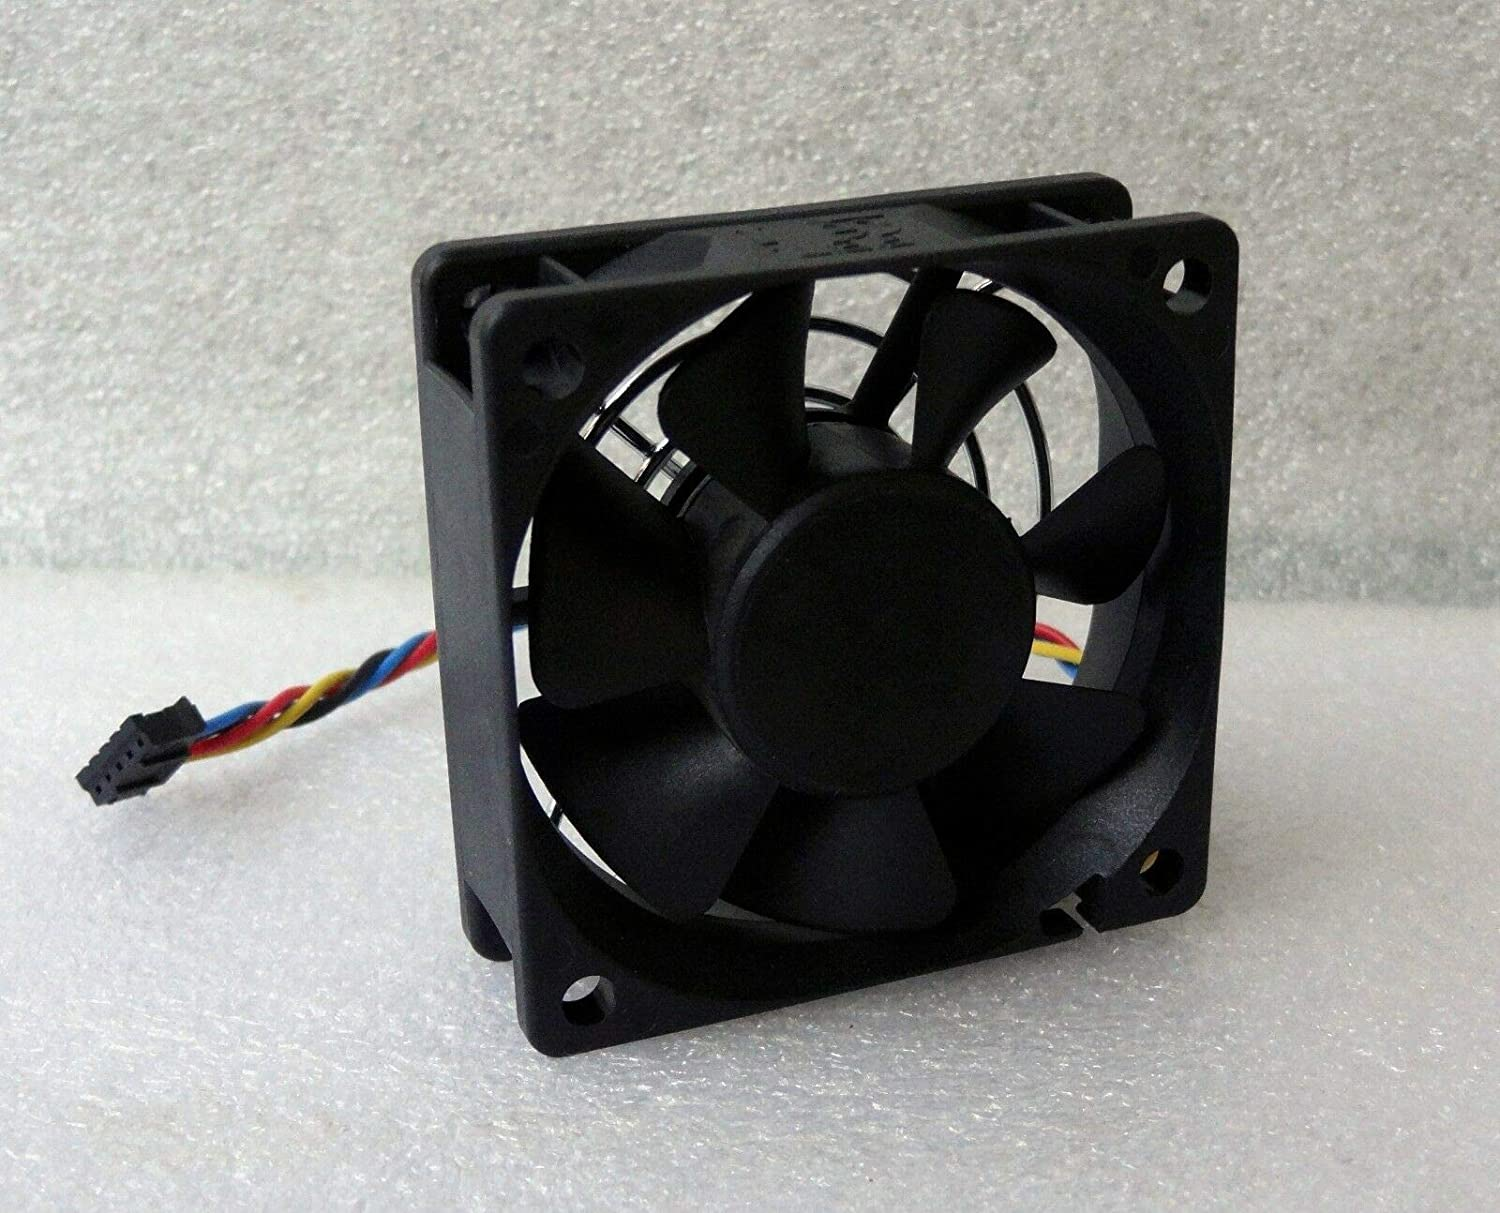 CAQL New Case CPU Chassis Fan for Dell Optiplex 9010 7010 9020 USFF, P/N: 0WDDHR 0K650T NU029 Sunon GM1206PKVX-A, 12V 3.0W 4-Pin 60x60x20mm